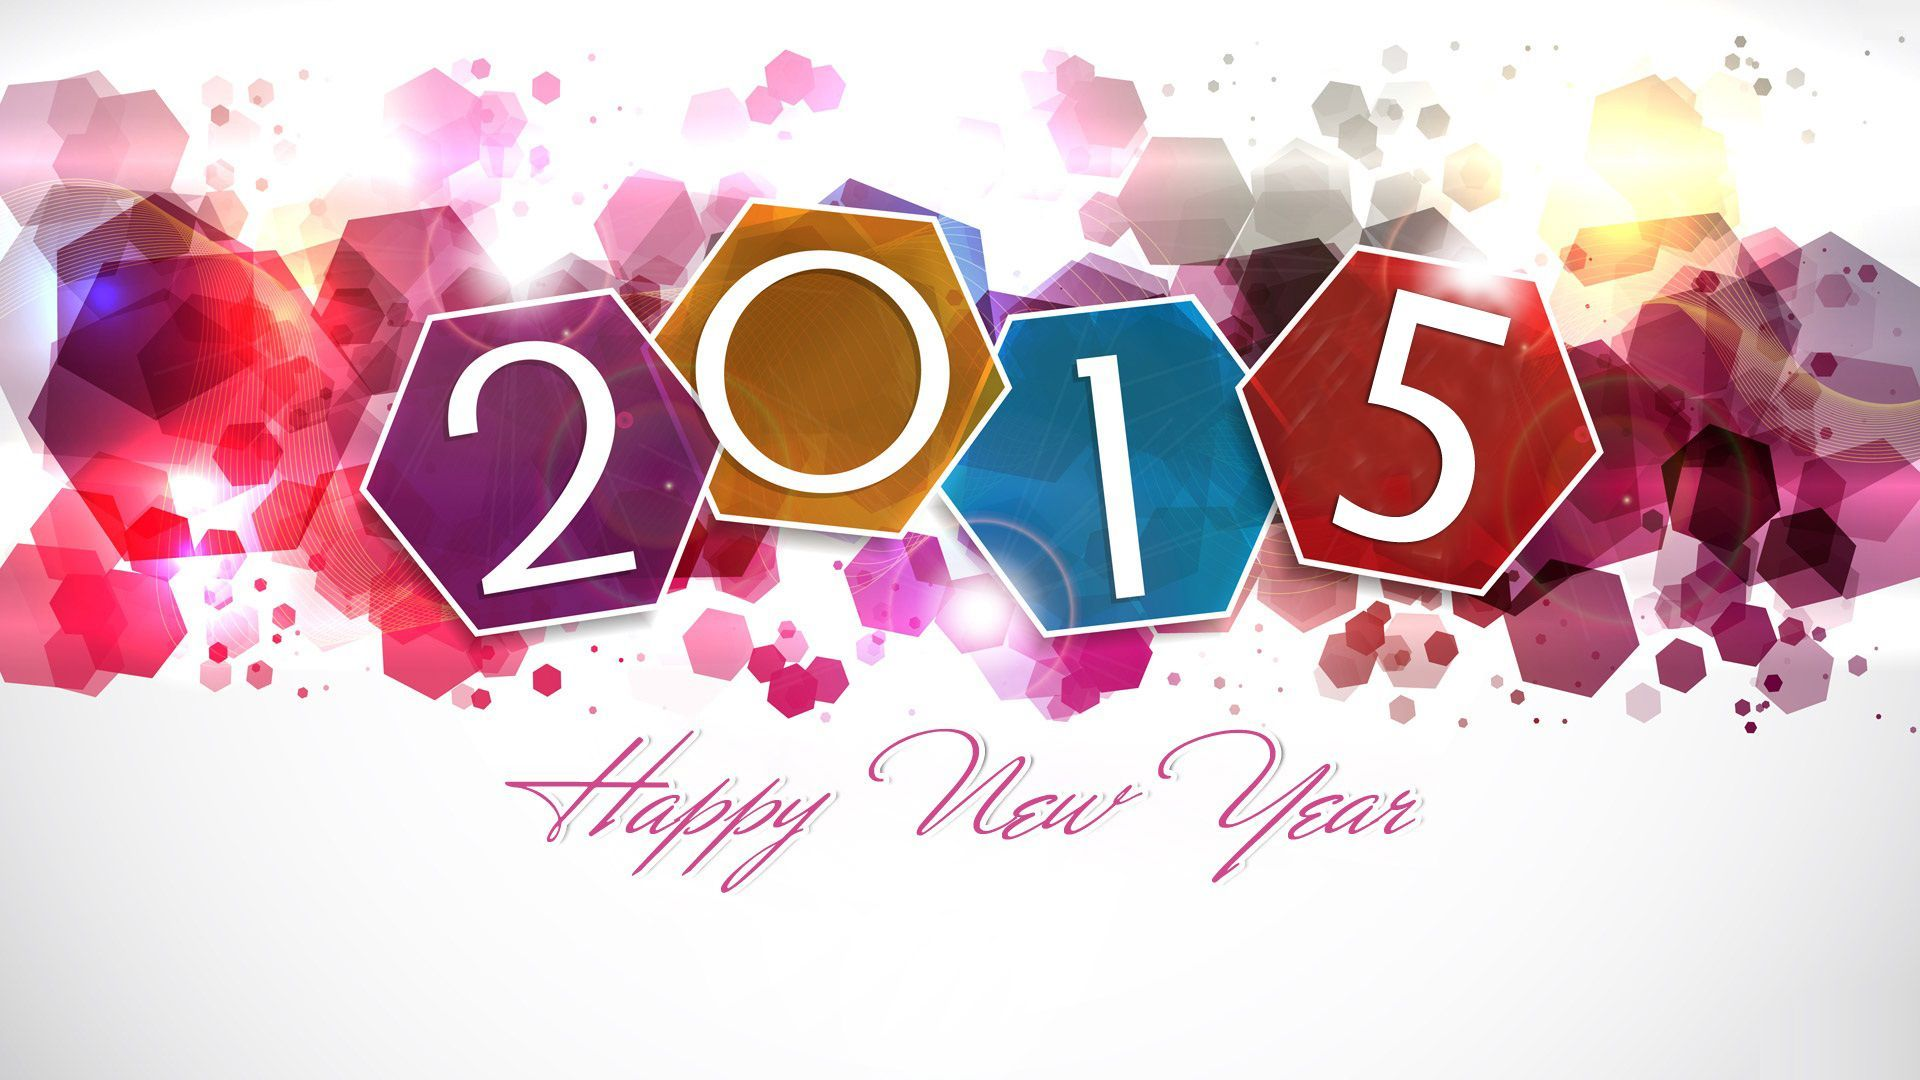 Wallpaper download new year 2015 - Happy New Year Hd Wallpaper 2015